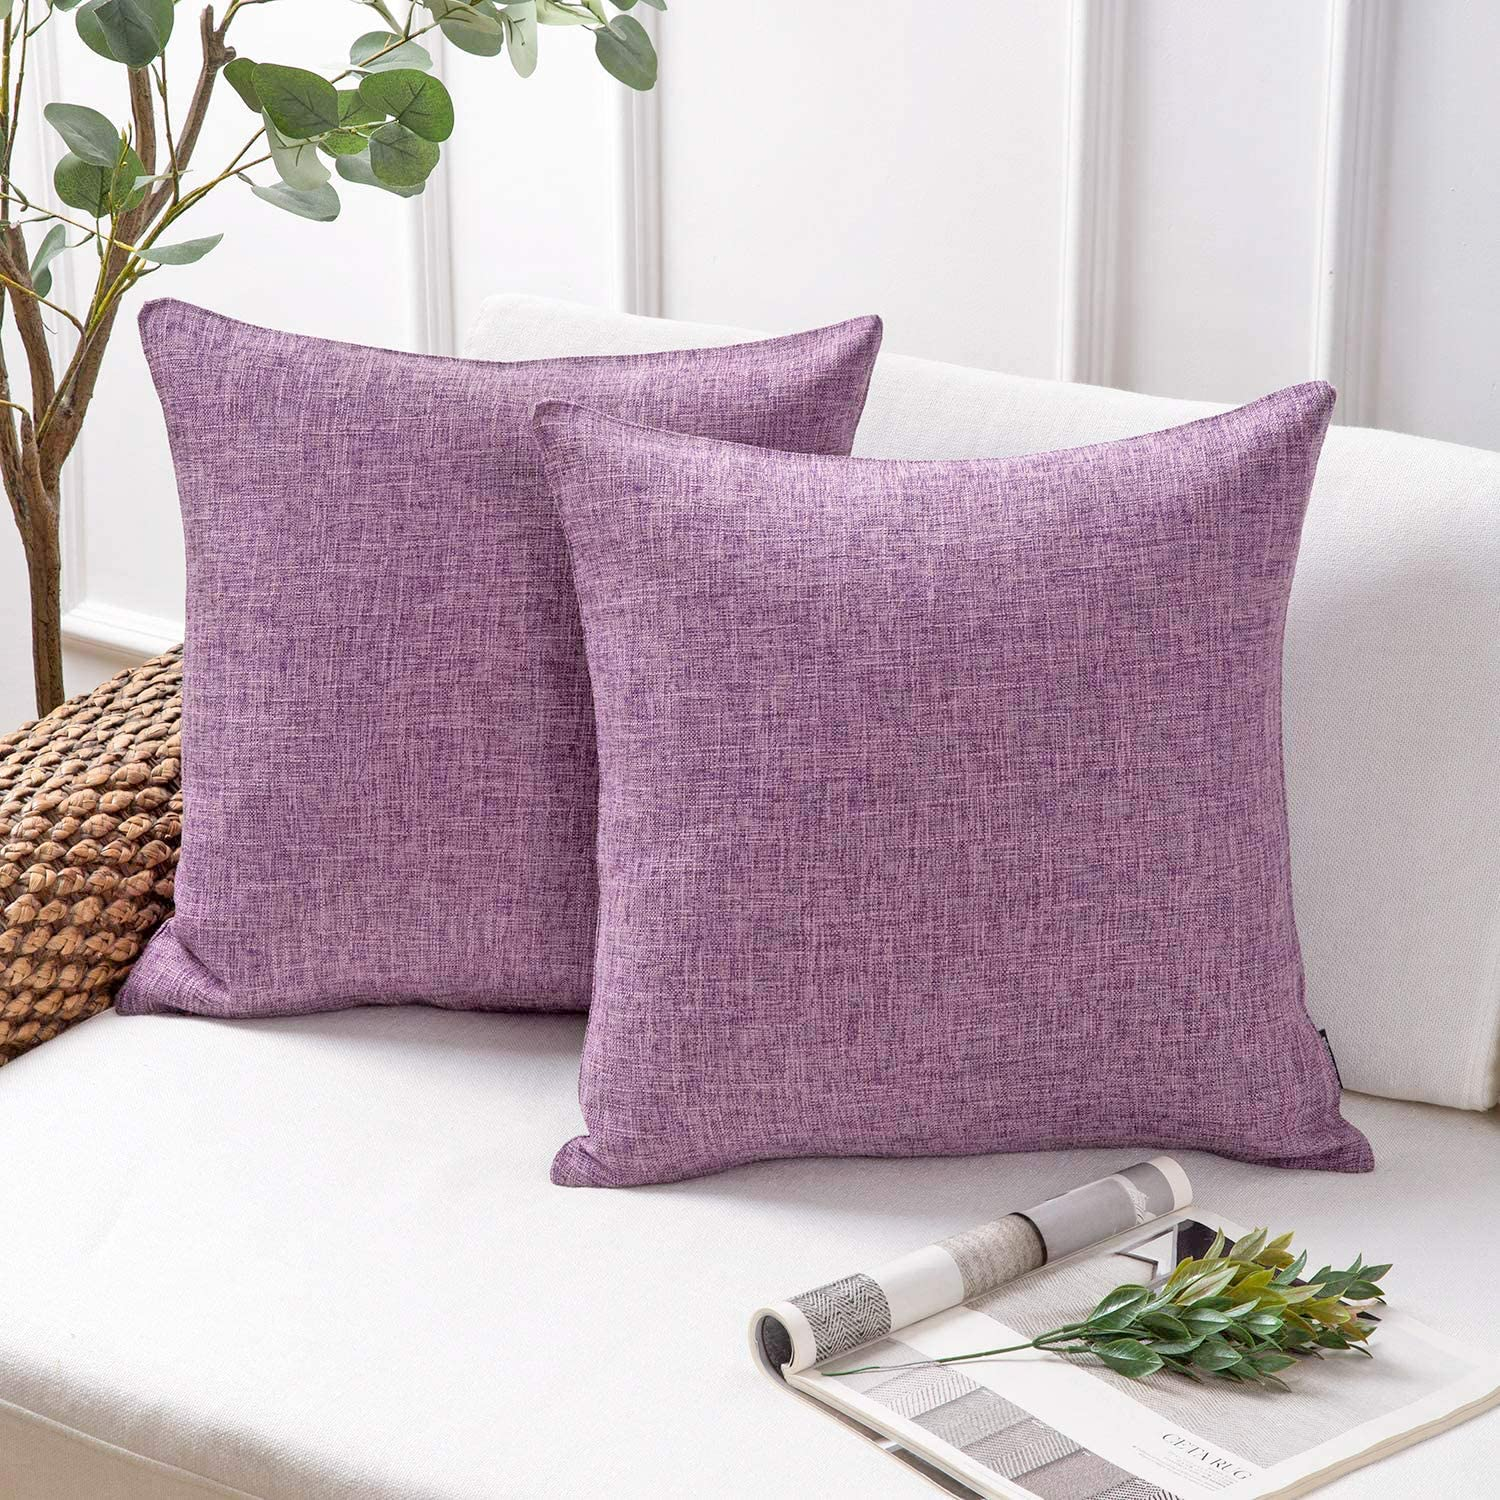 Phantoscope Throw Pillow Cover Textured Faux Linen Series Decorative Cushion Covers for Home Decor Sofa Pack of 2, Light Purple 20 x 20 inches 50 x 50 cm